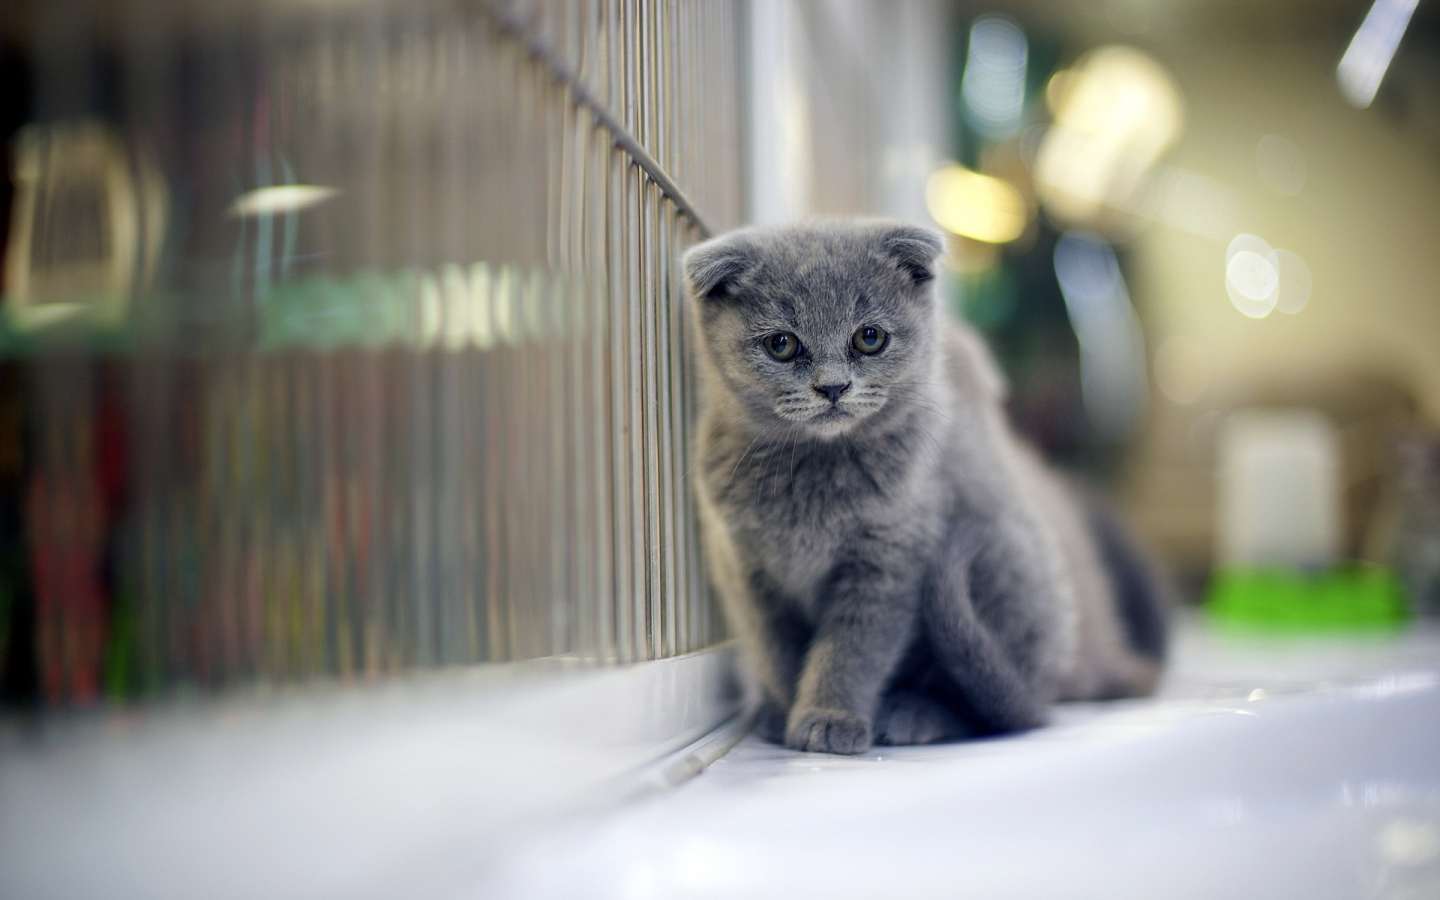 Sad Gray Scottish Fold Cat for 1440 x 900 widescreen resolution